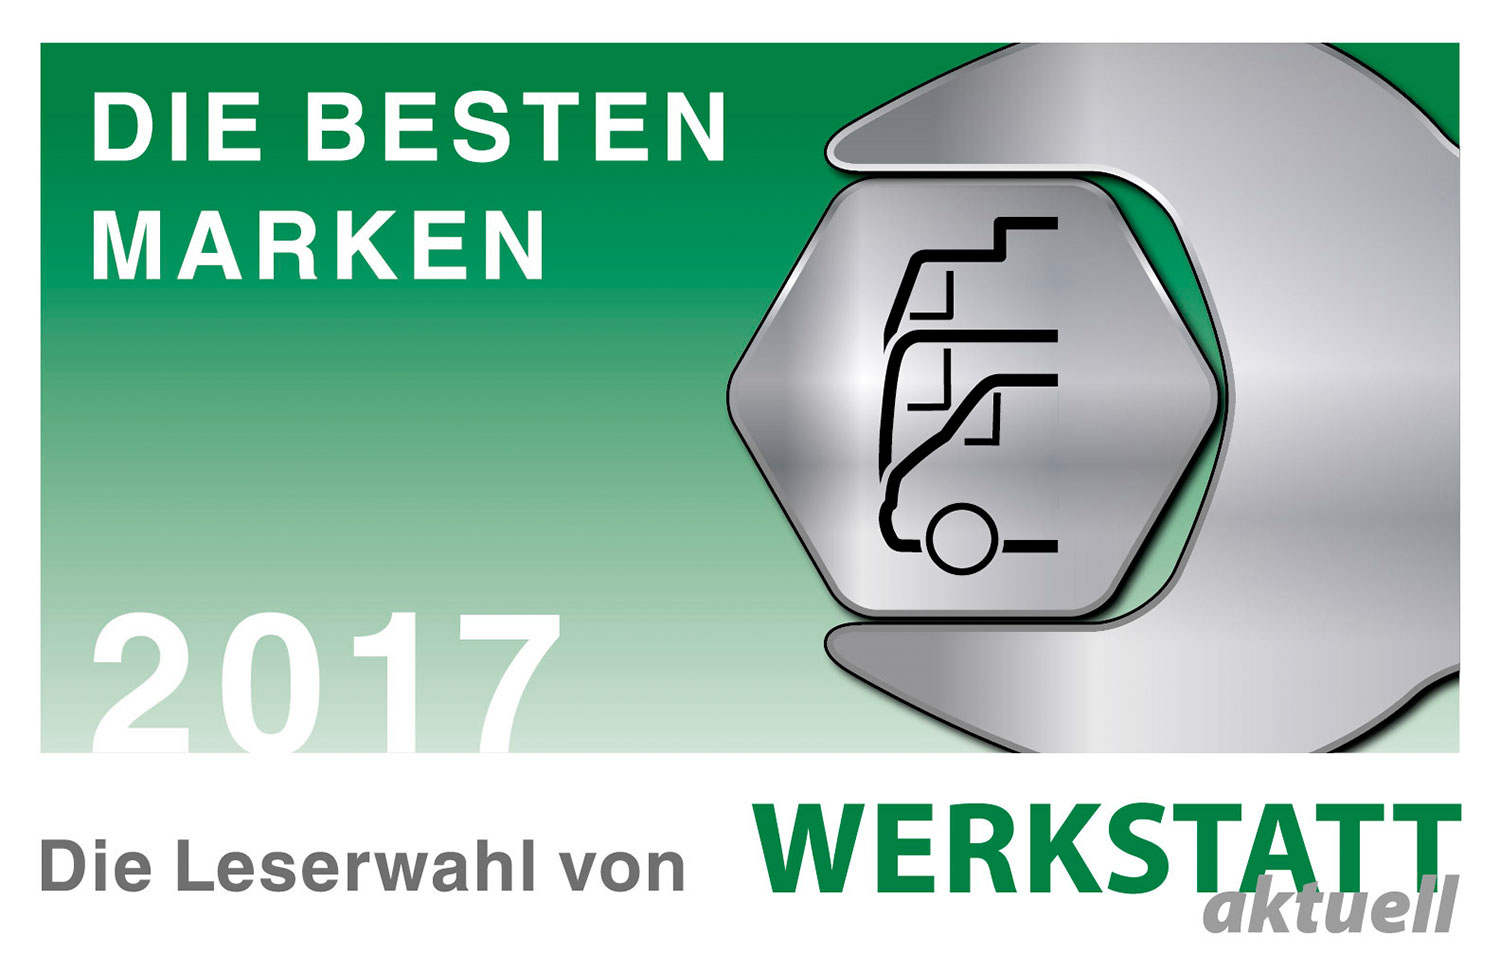 """4 in a row! – HAZET wins the award from WERKSTATT aktuell magazine as best brand in the """"Tool"""" and """"Pneumatic Screwdrivers"""" categories for the fourth time in a row!"""